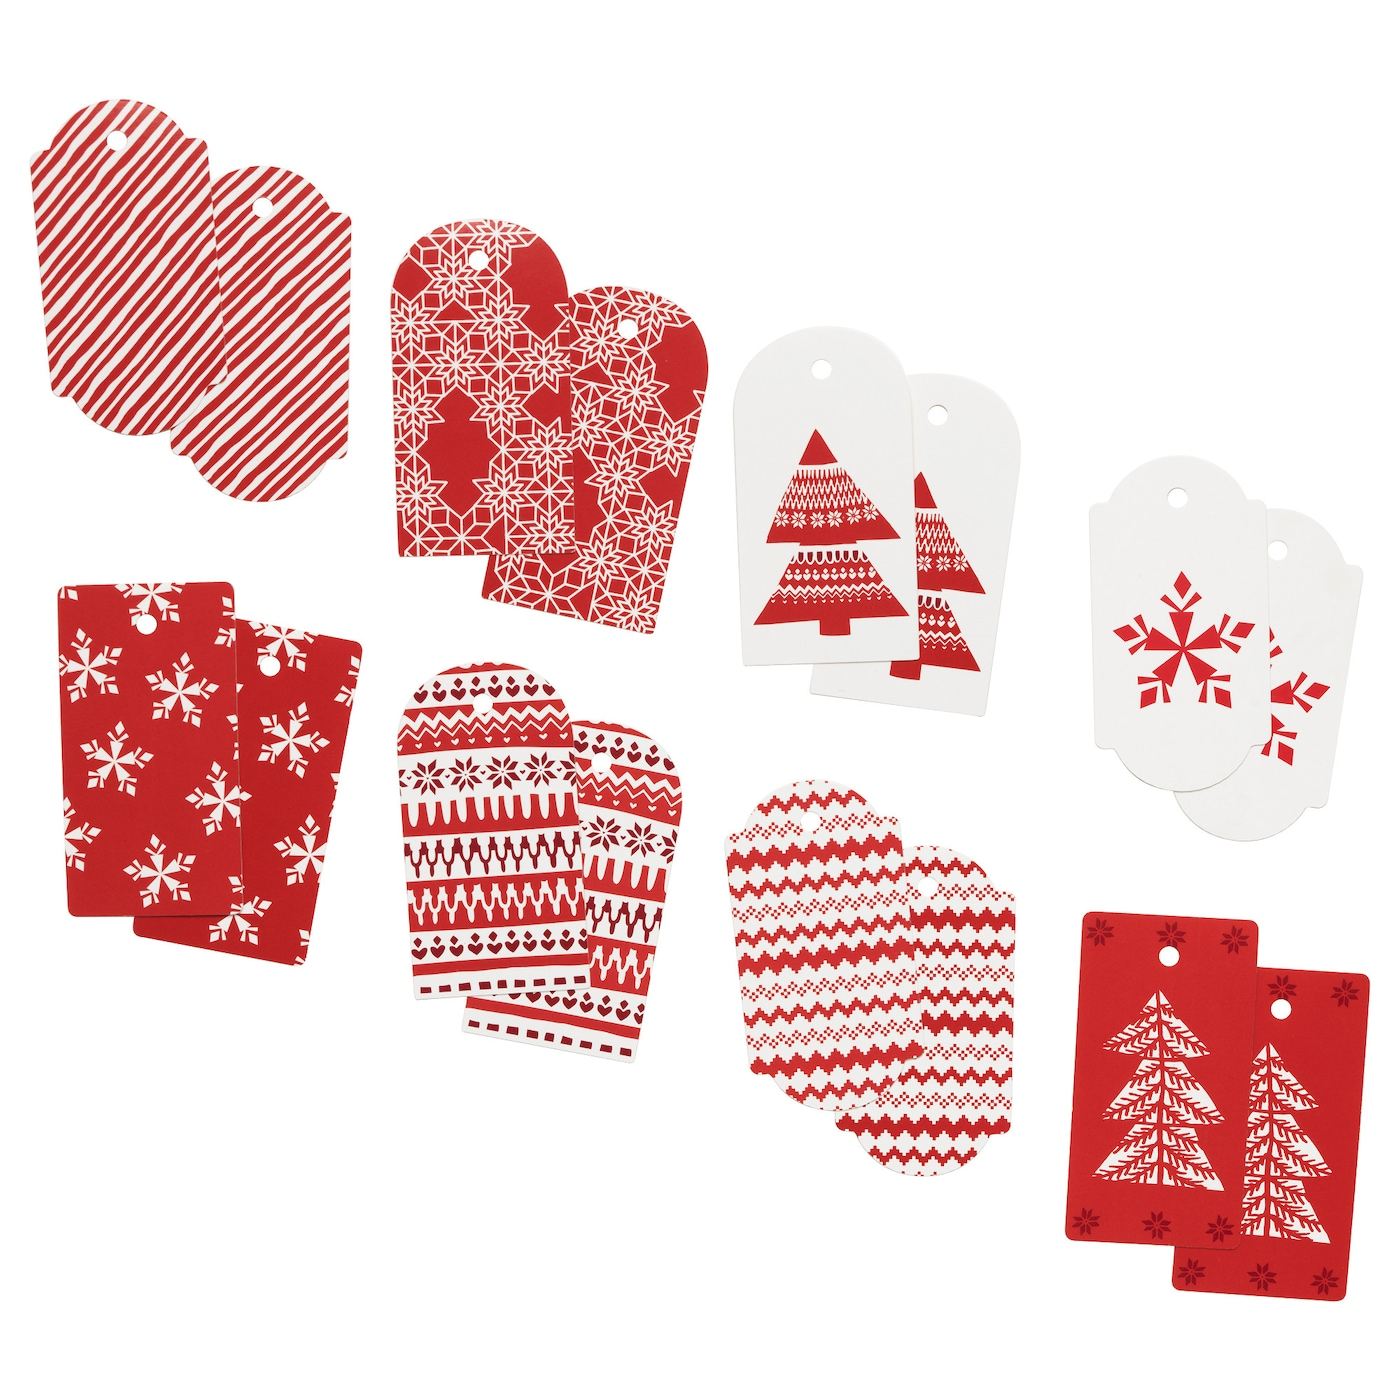 IKEA VINTER 2017 gift tag, set of 16 Hanging gift tags which you can use to decorate your presents.